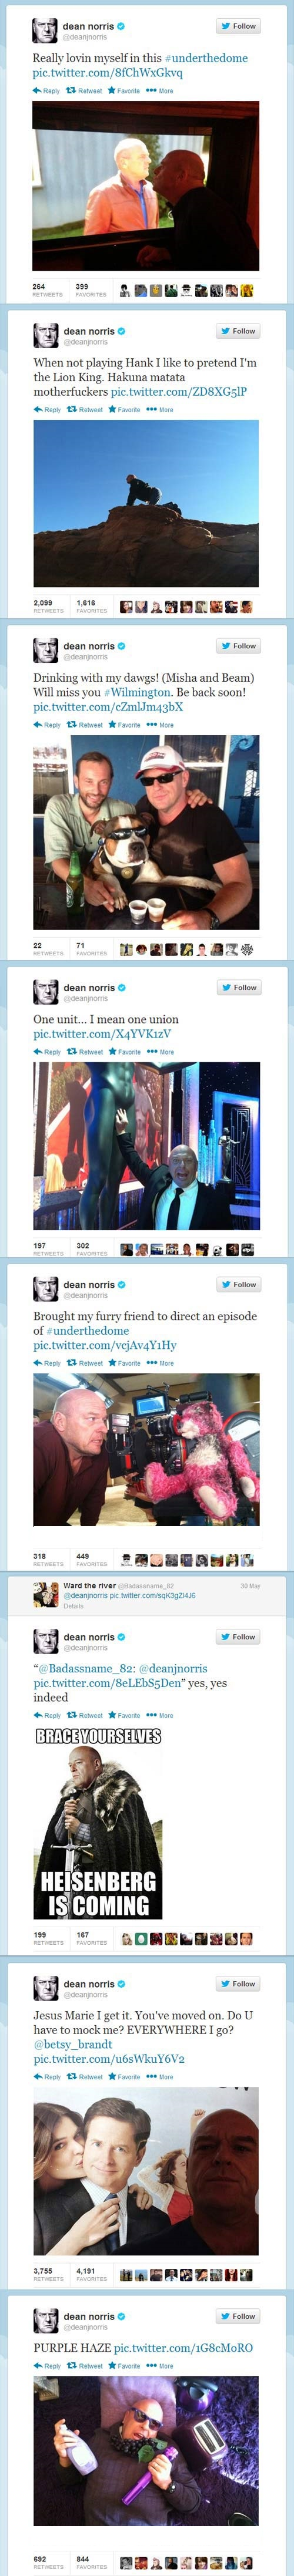 funny-pictures-dean-norris-twitter